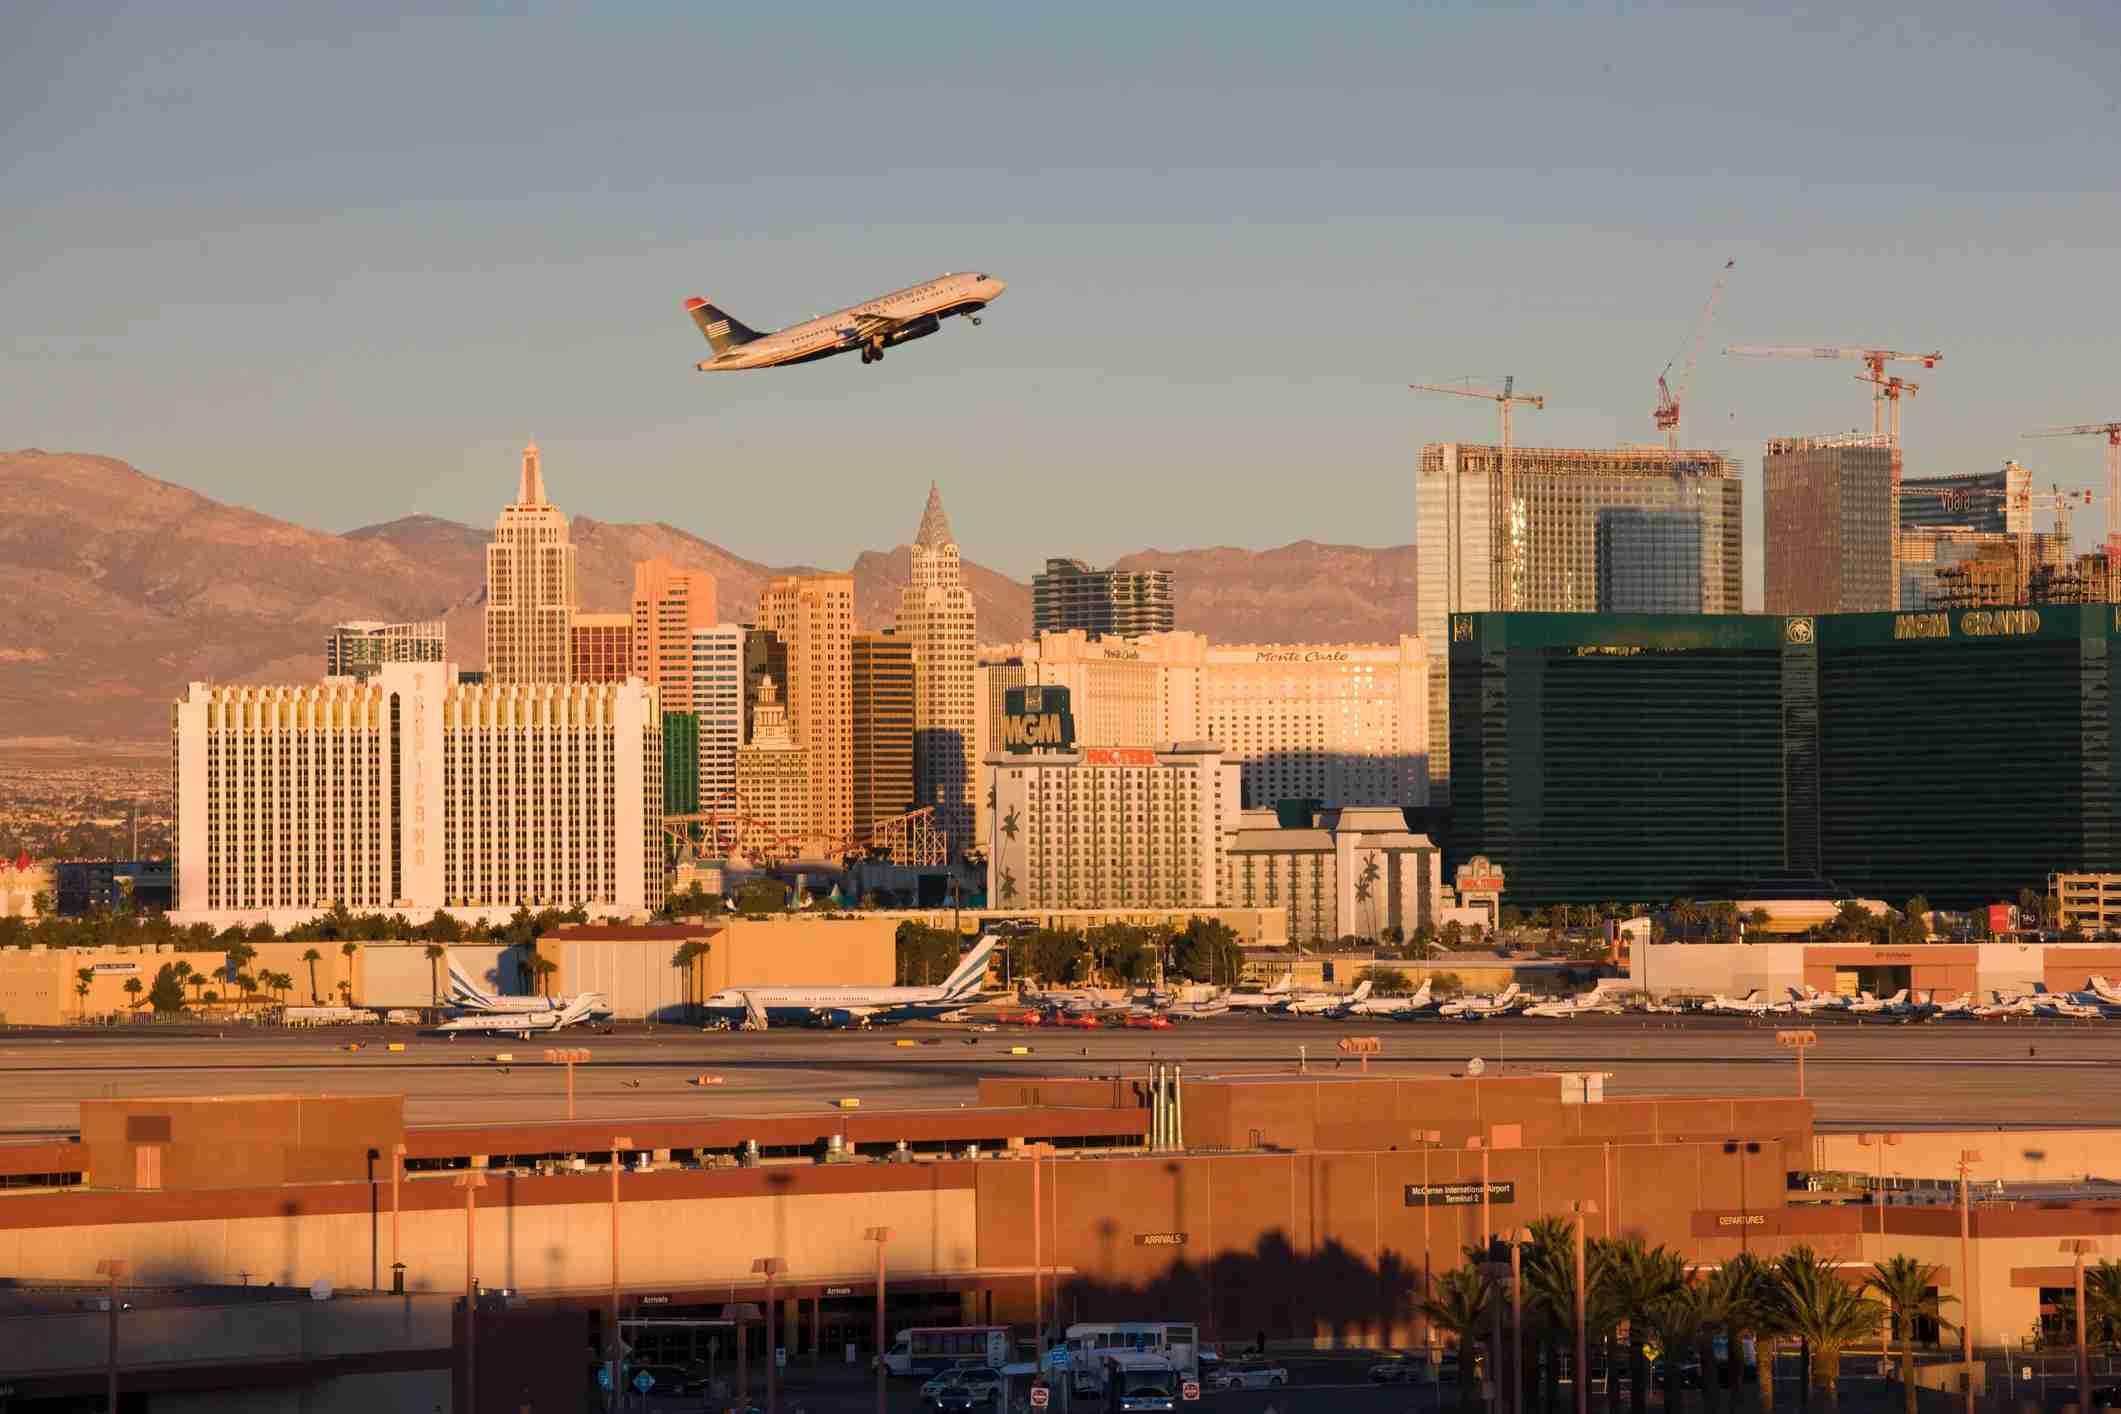 Airplane view taking off from Las Vegas McCarran International Airport (Photo by Walter Bibikow/Getty Images).